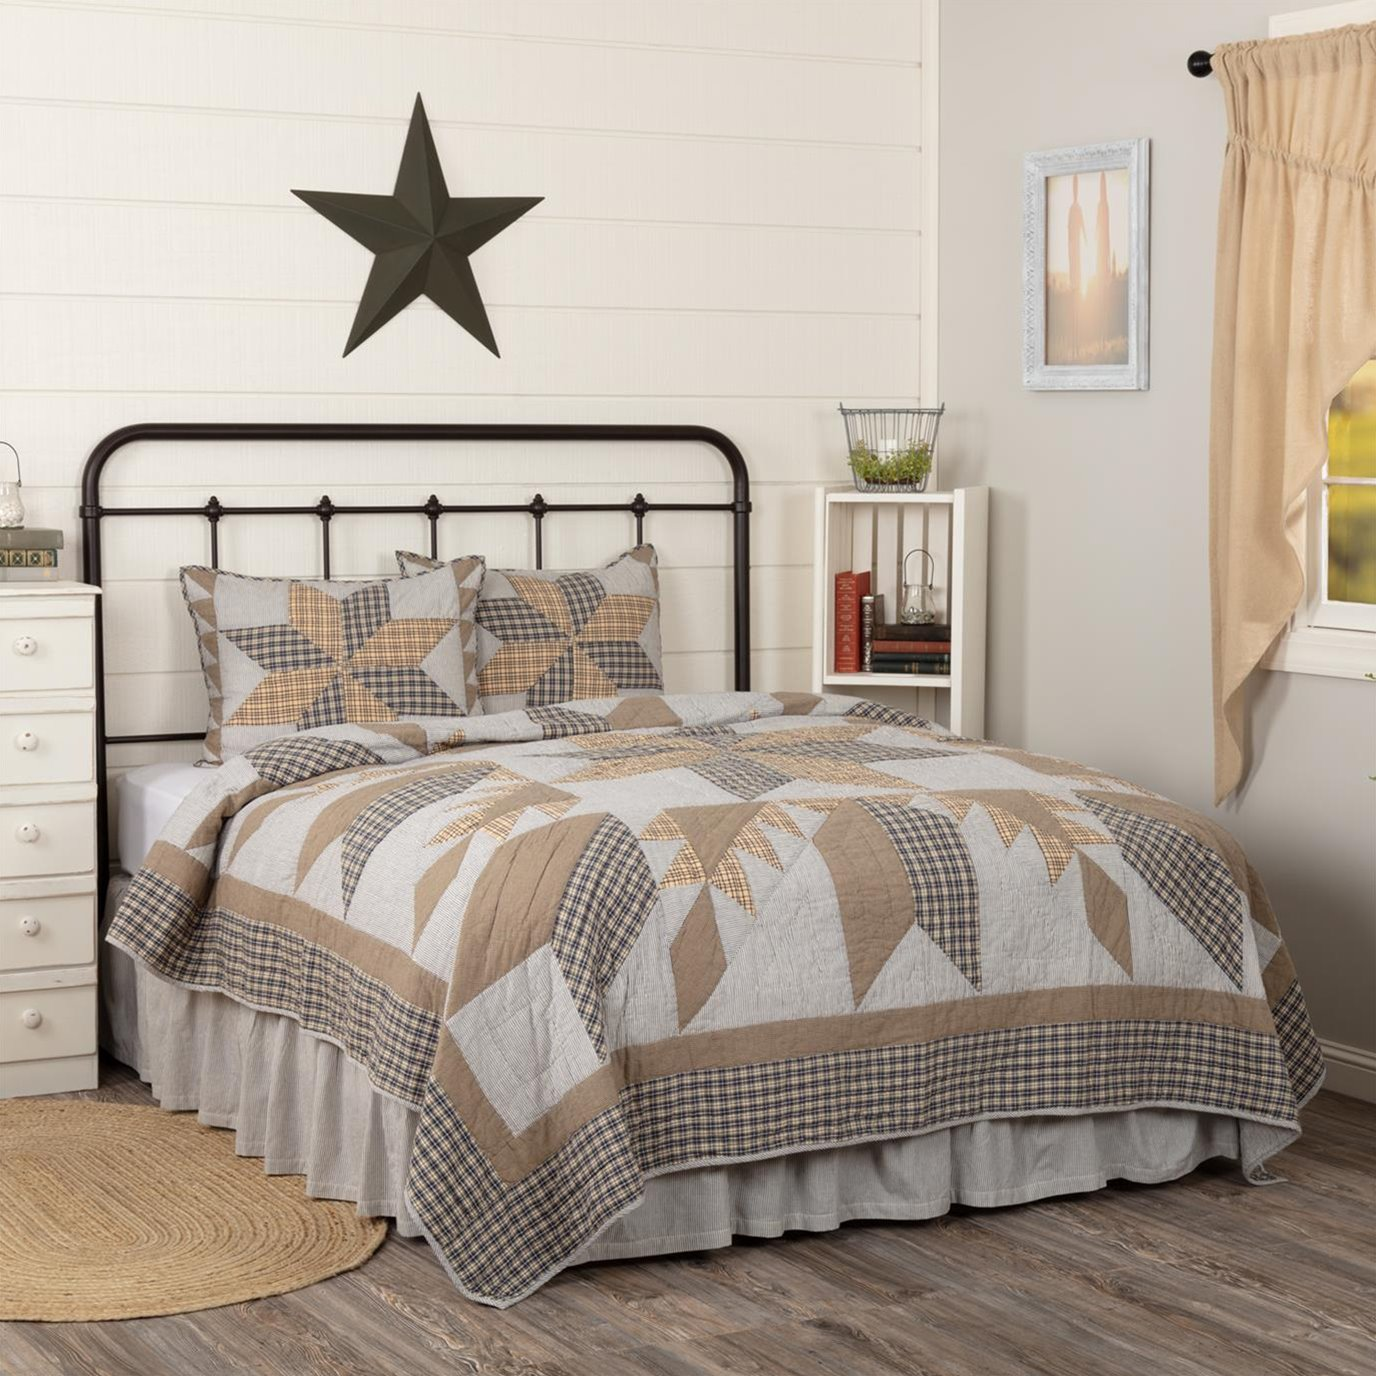 Dakota Star Farmhouse Blue California King Quilt Set; 1-Quilt 130Wx115L w/2 Shams 21x37